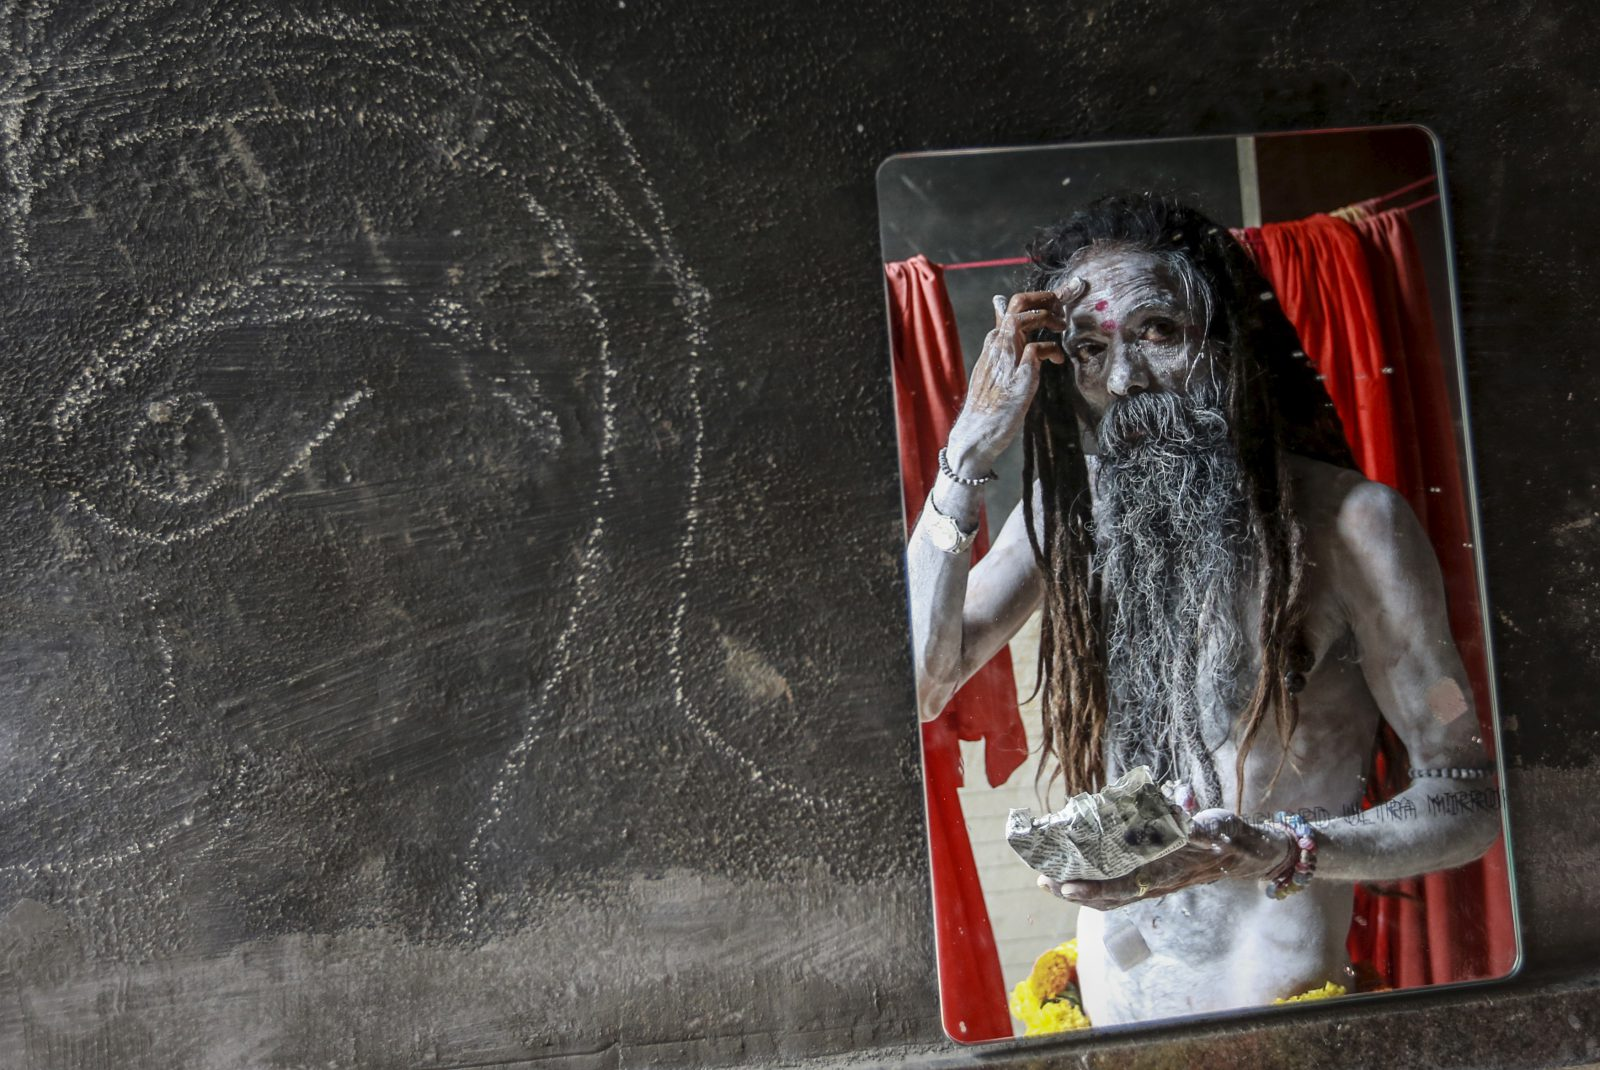 A Naga sadhu, or a Hindu holy man, applies ash at his camp before a procession during Kumbh Mela or the Pitcher Festival in Trimbakeshwar, India, August 27, 2015. Hundreds of thousands of Hindus took part in the religious gathering at the banks of the Godavari river in Nashik city at the festival, which is held every 12 years in different Indian cities.